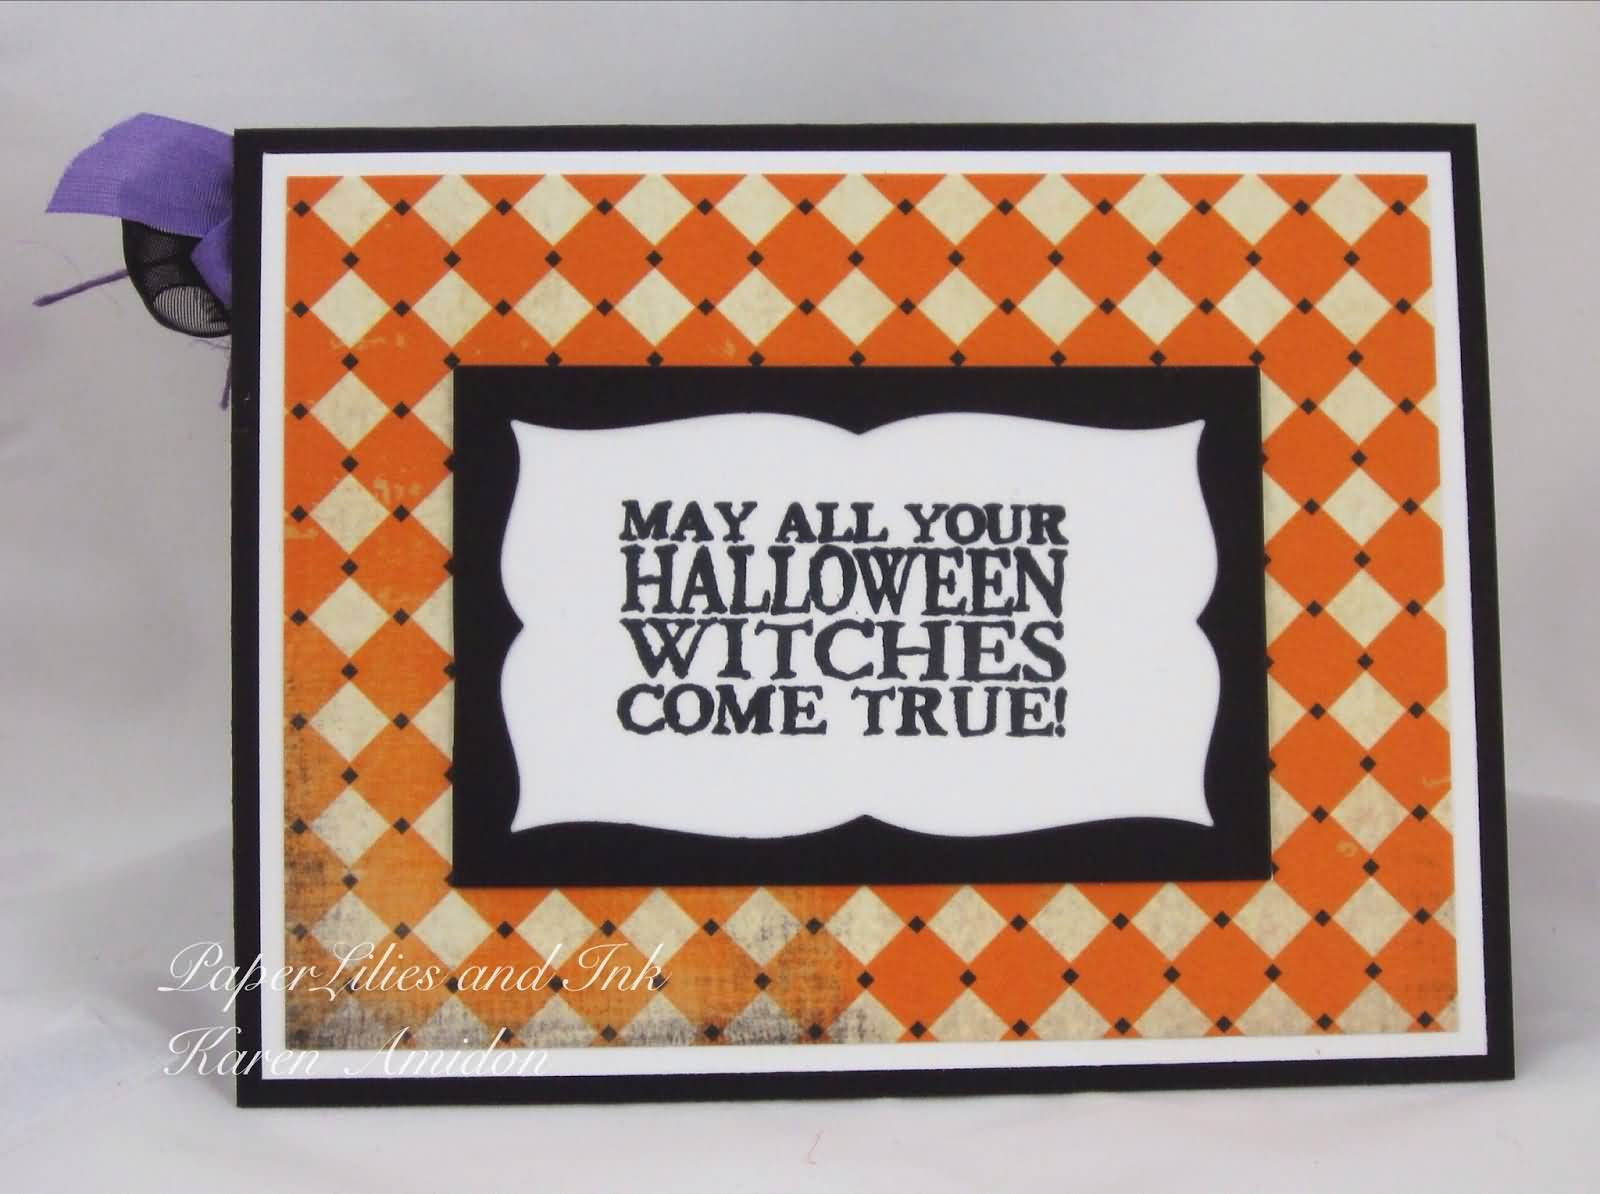 May All Your Halloween Witches Come True Greeting Card